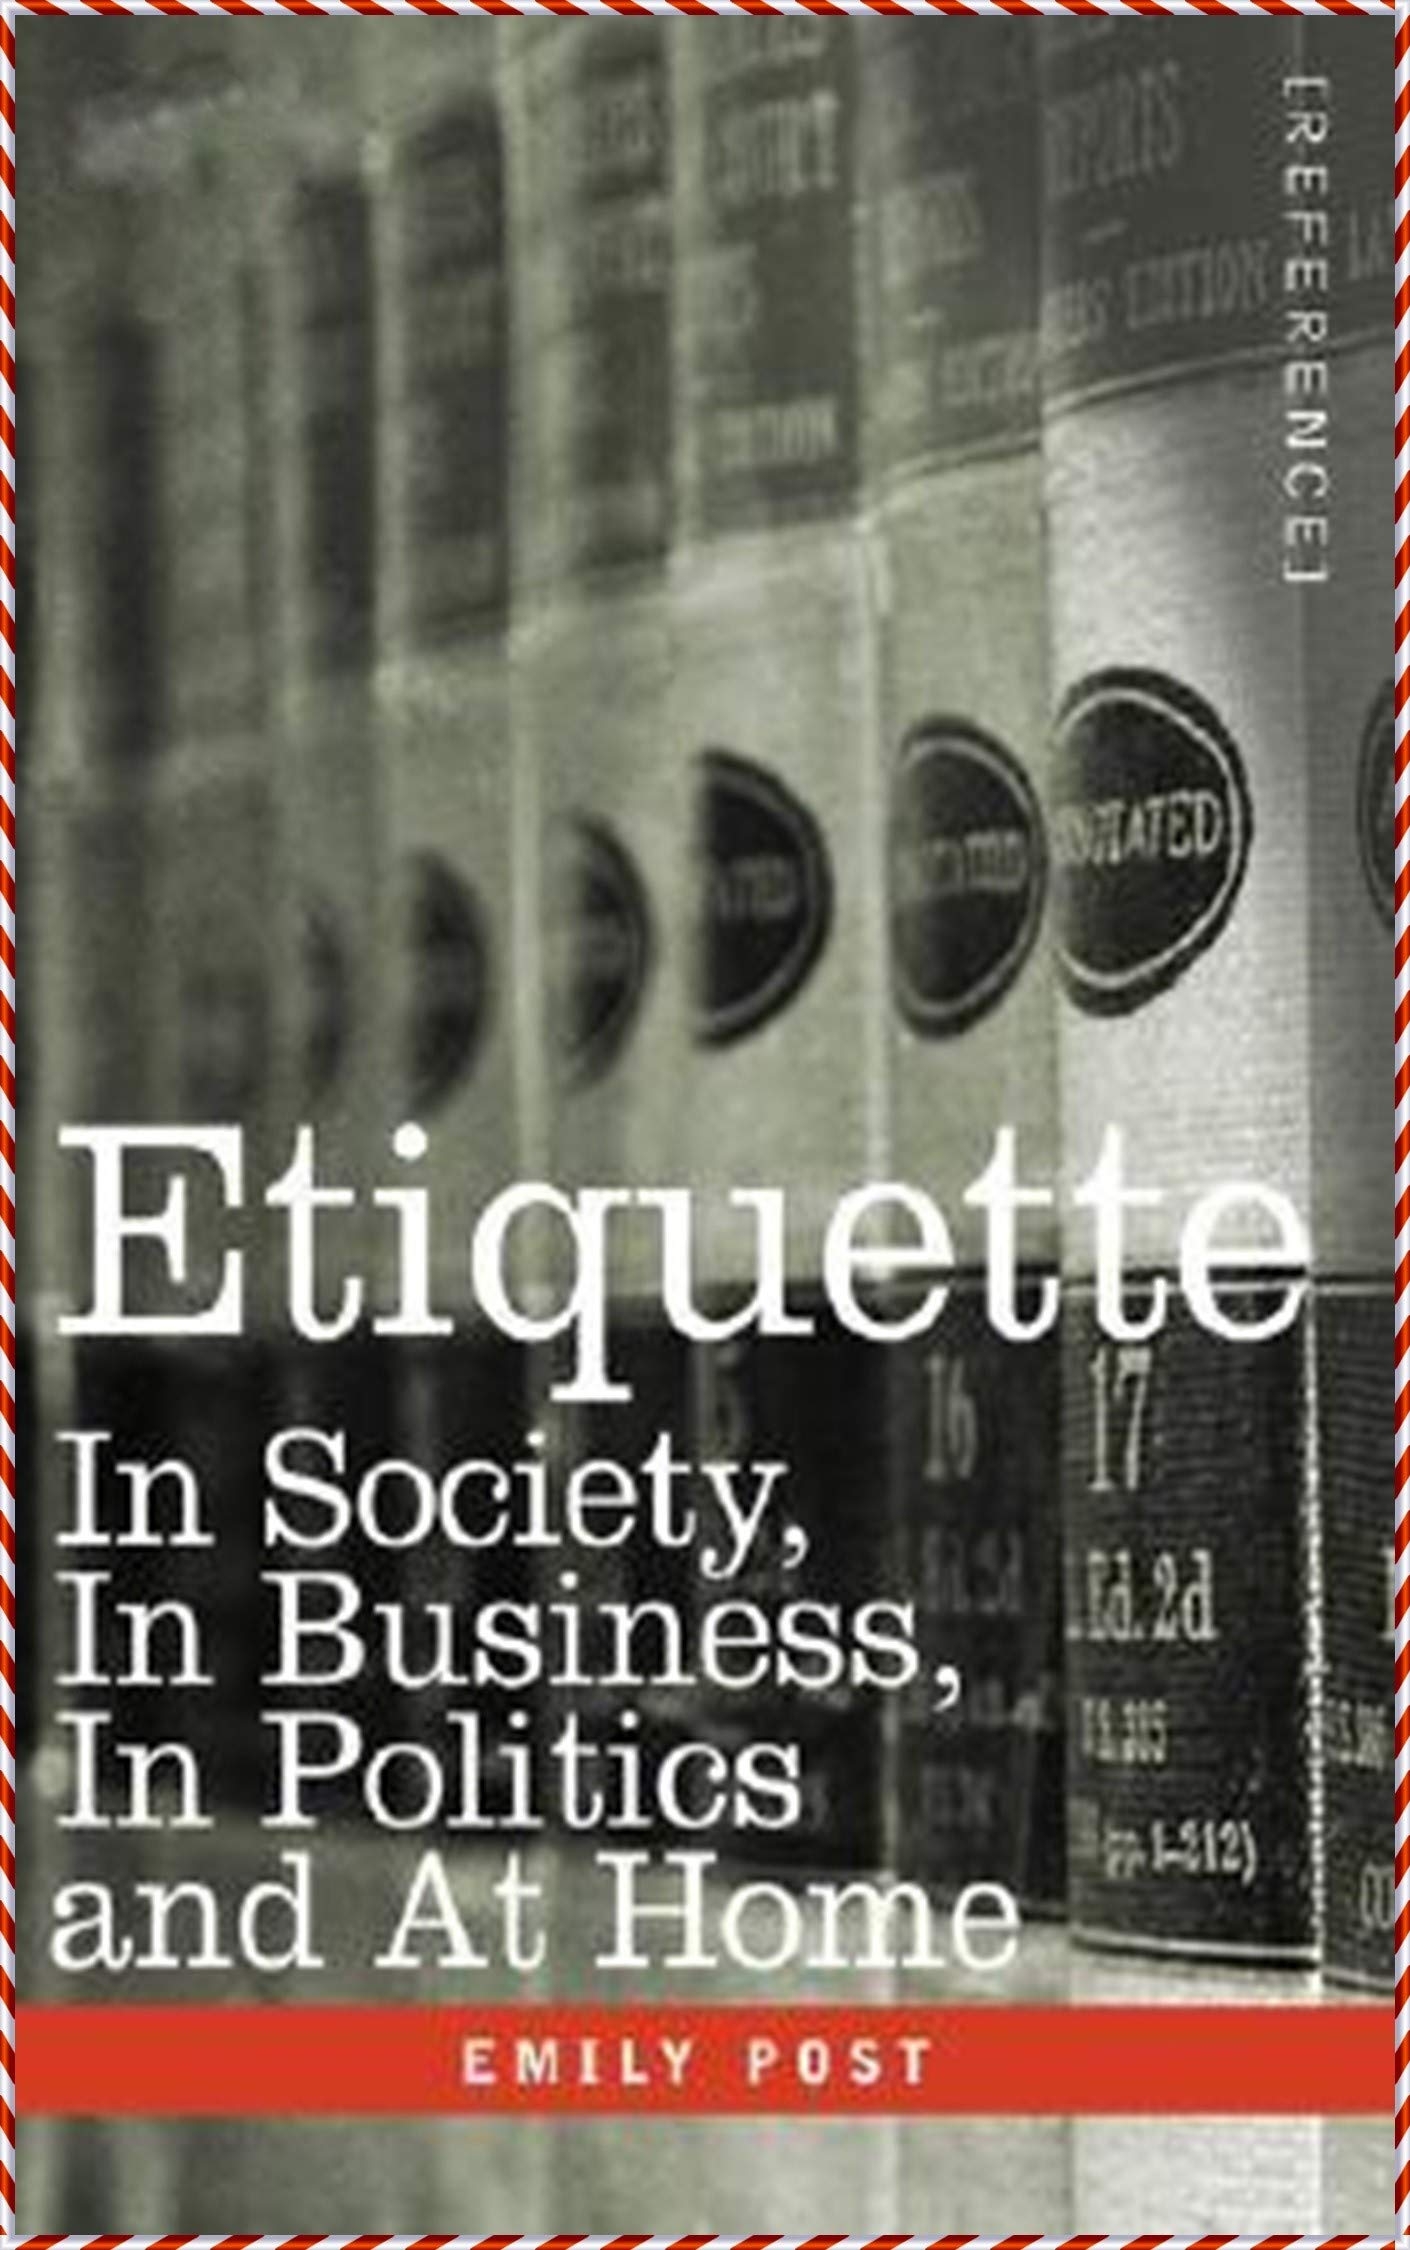 Etiquette in Society, in Business, in Politics and at Home - Emily Post [Literary Touchstone Edition](annotated)